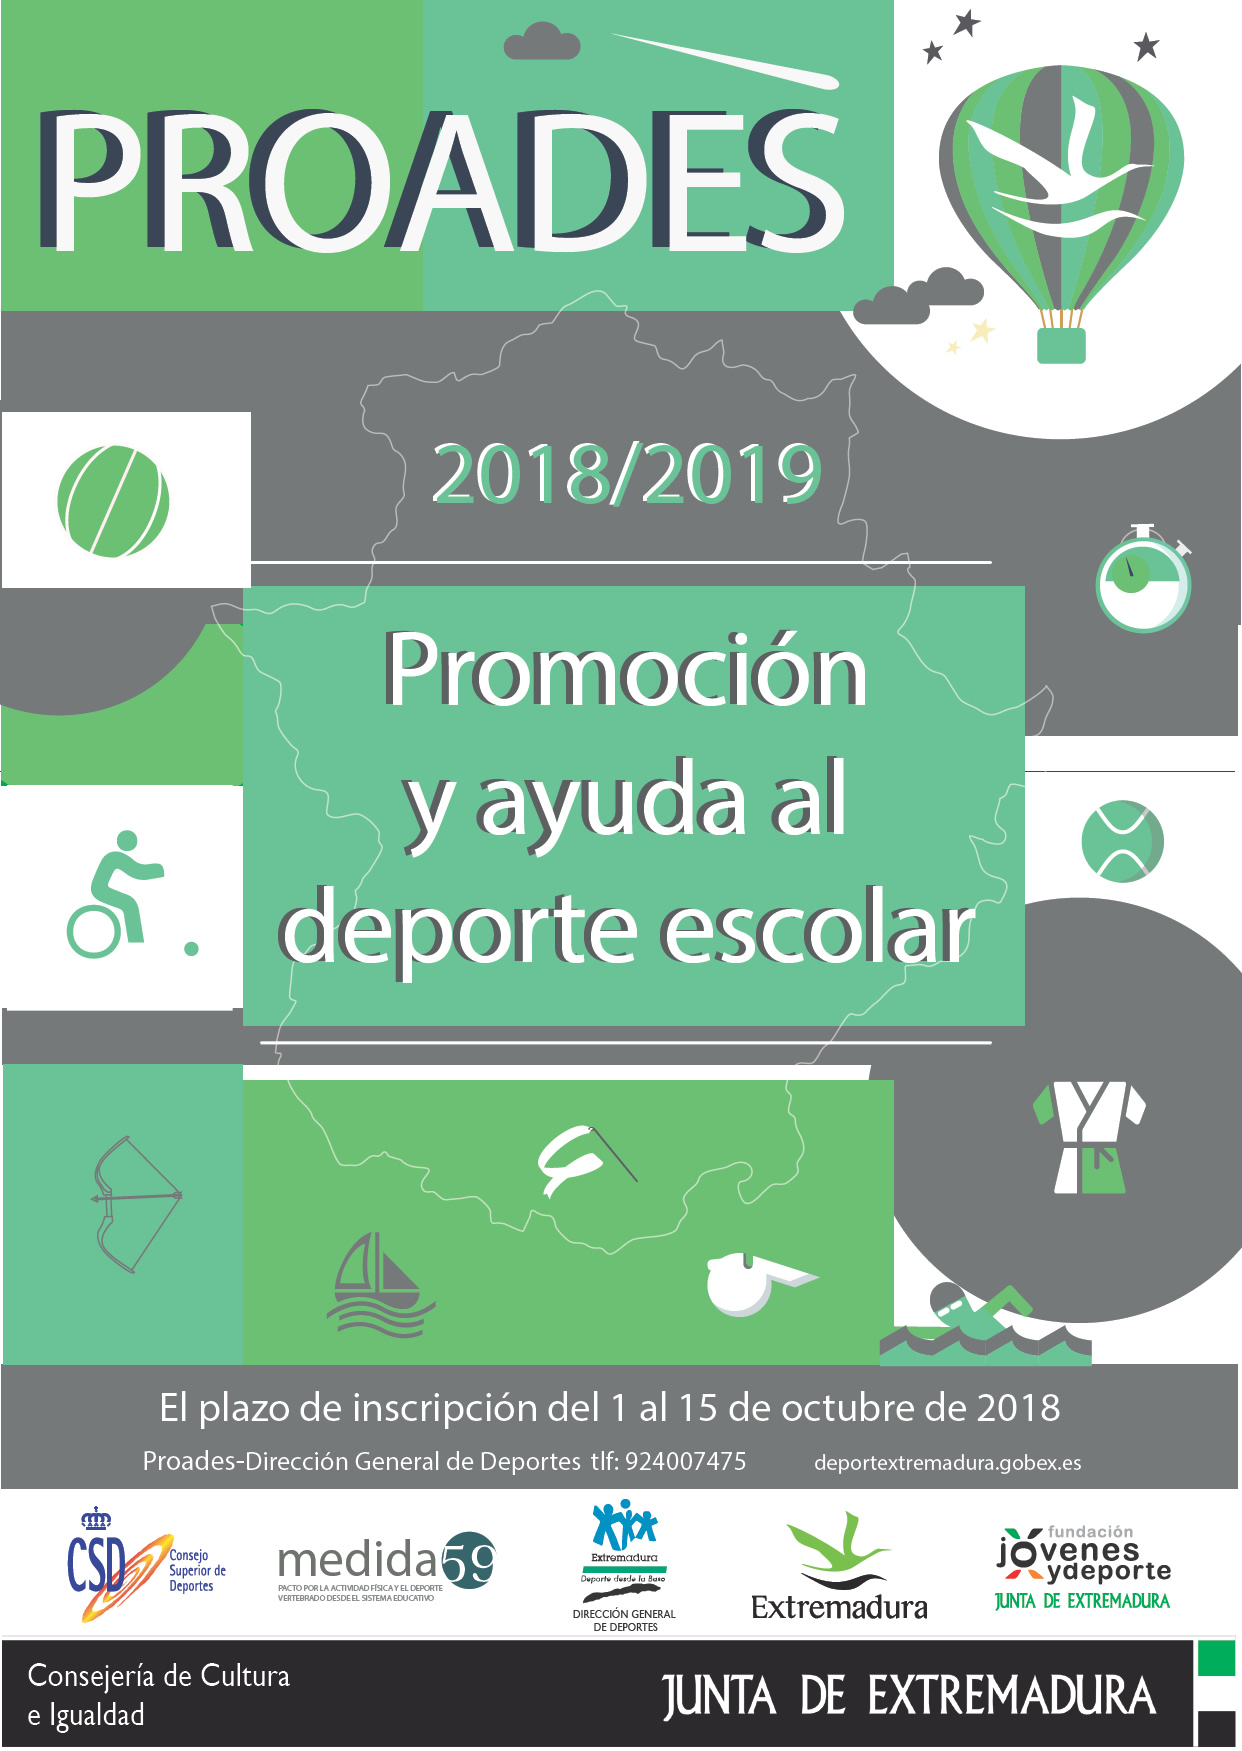 Proades 2019 DGD Extremadura